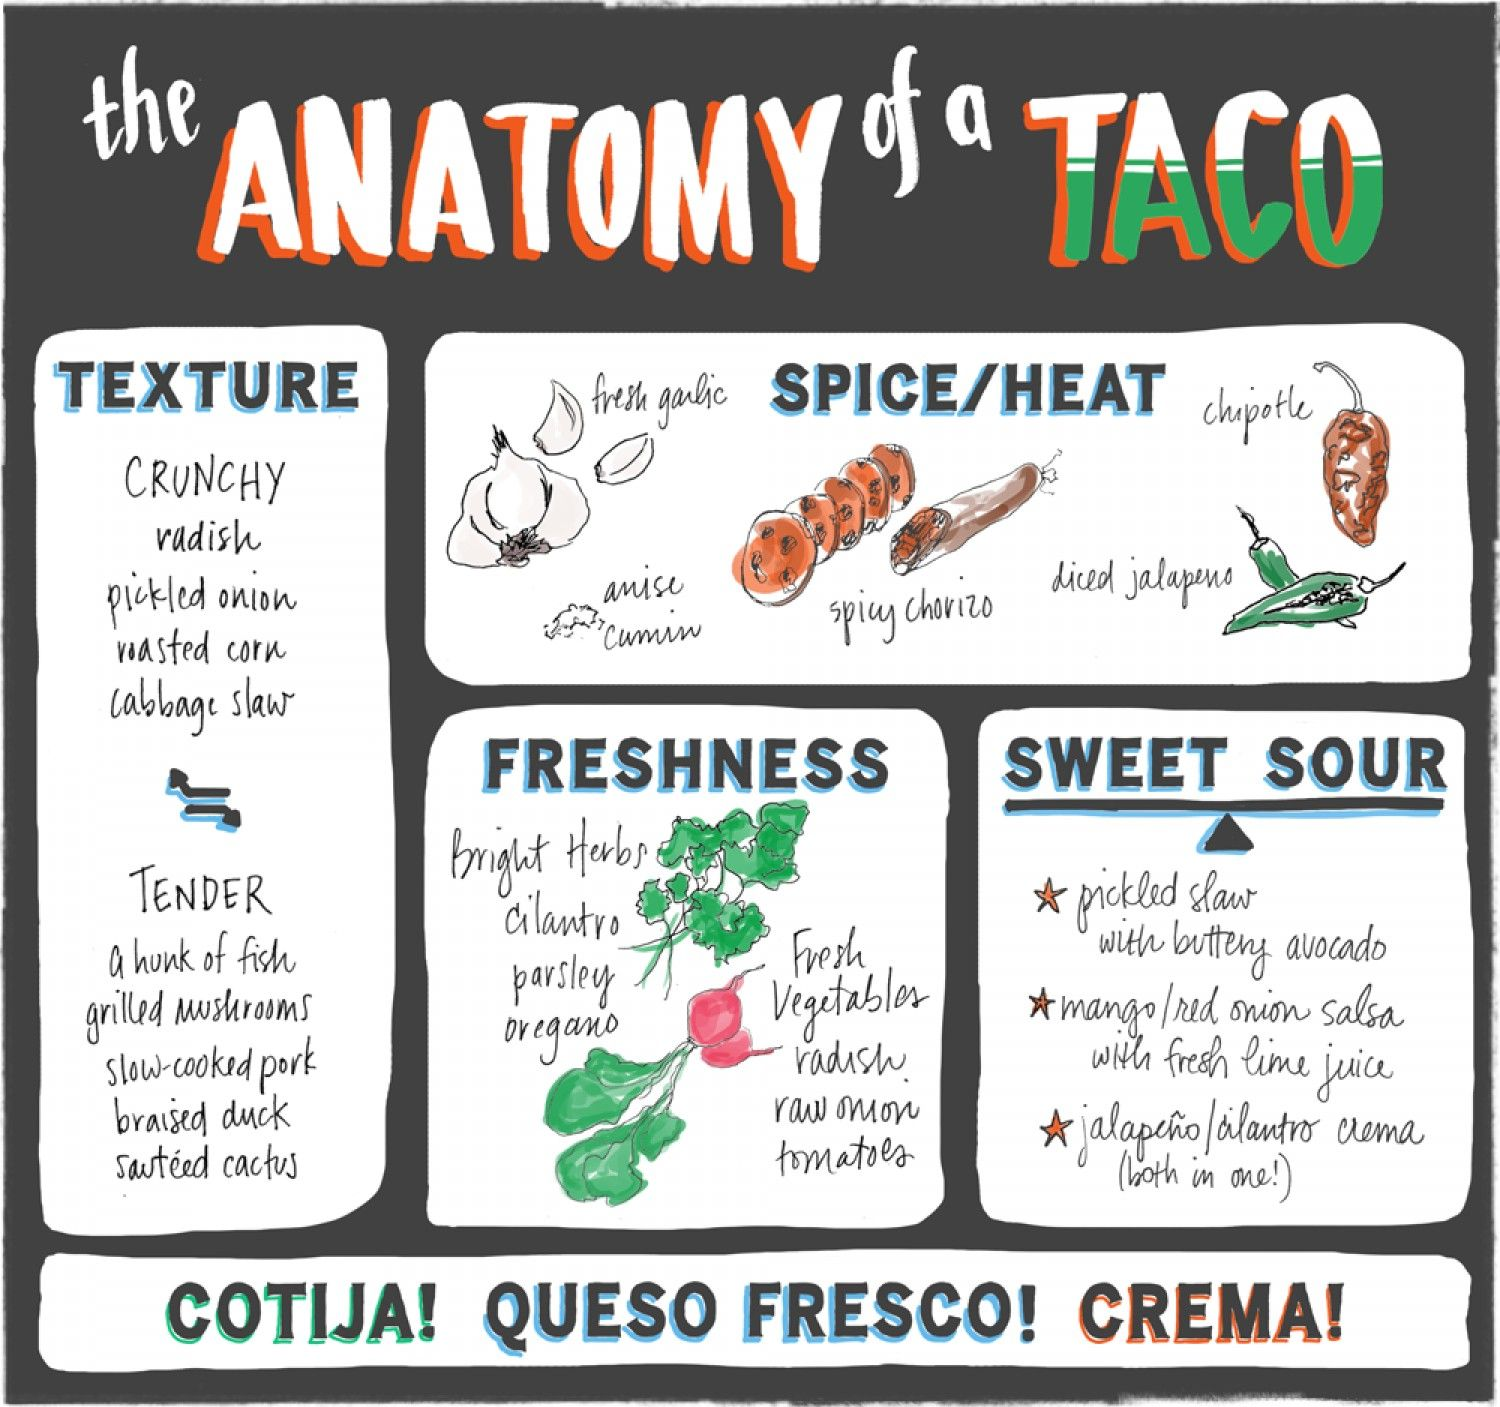 The Anatomy Of A Taco Infographic Tacos Crunchy Radish Anatomy